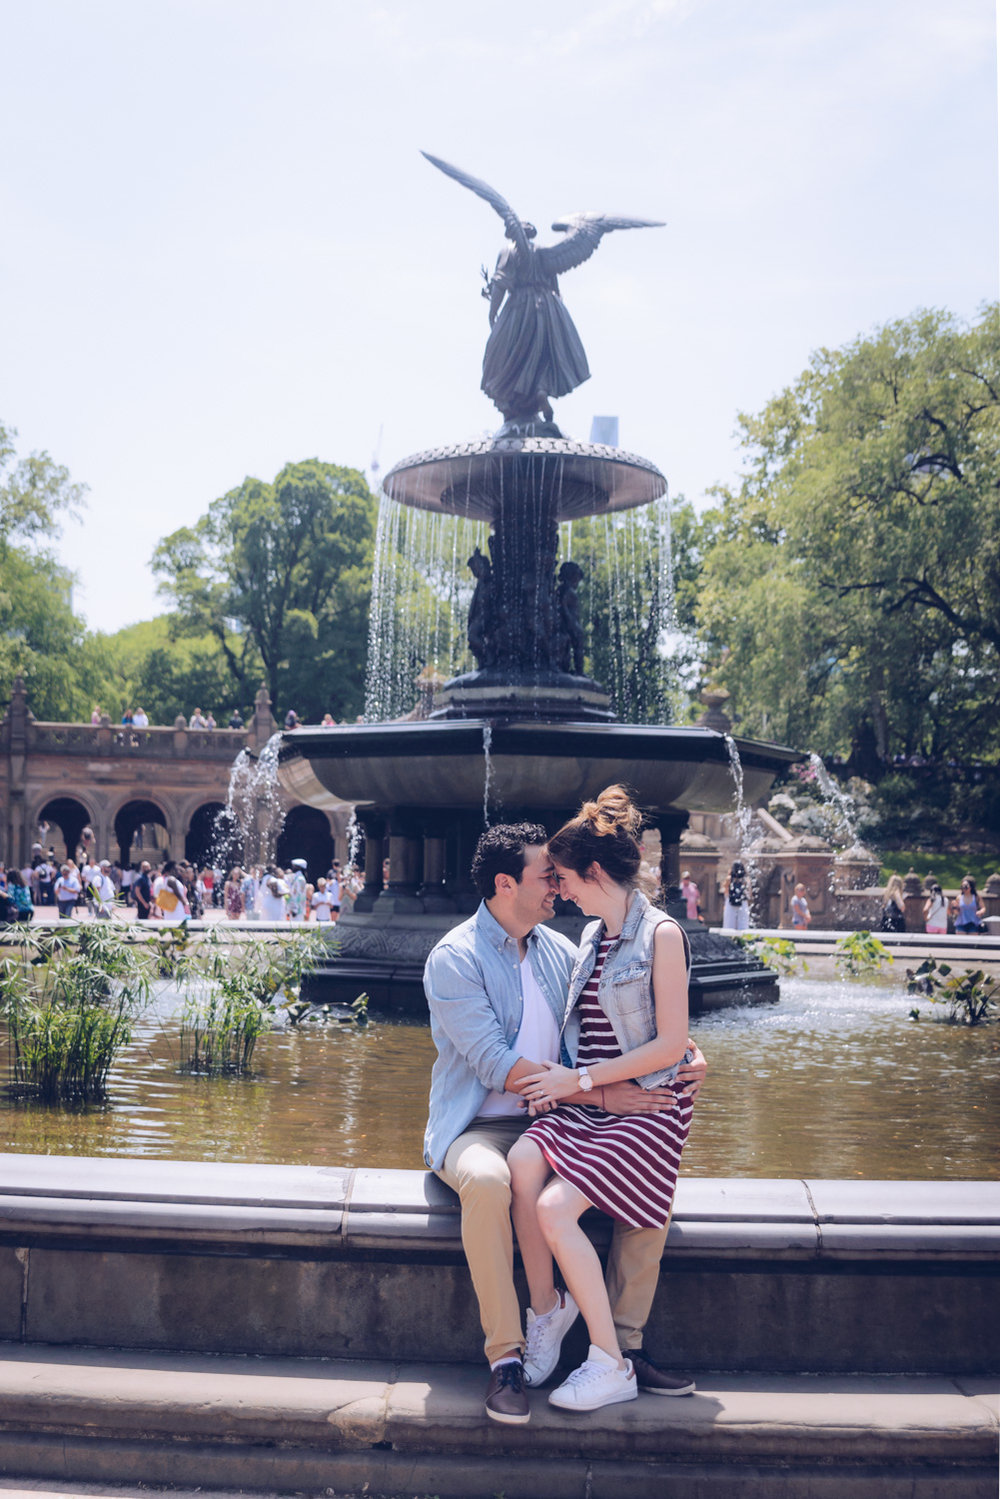 Jimena & Hector proposal in NYC by Alberto-Lama.com